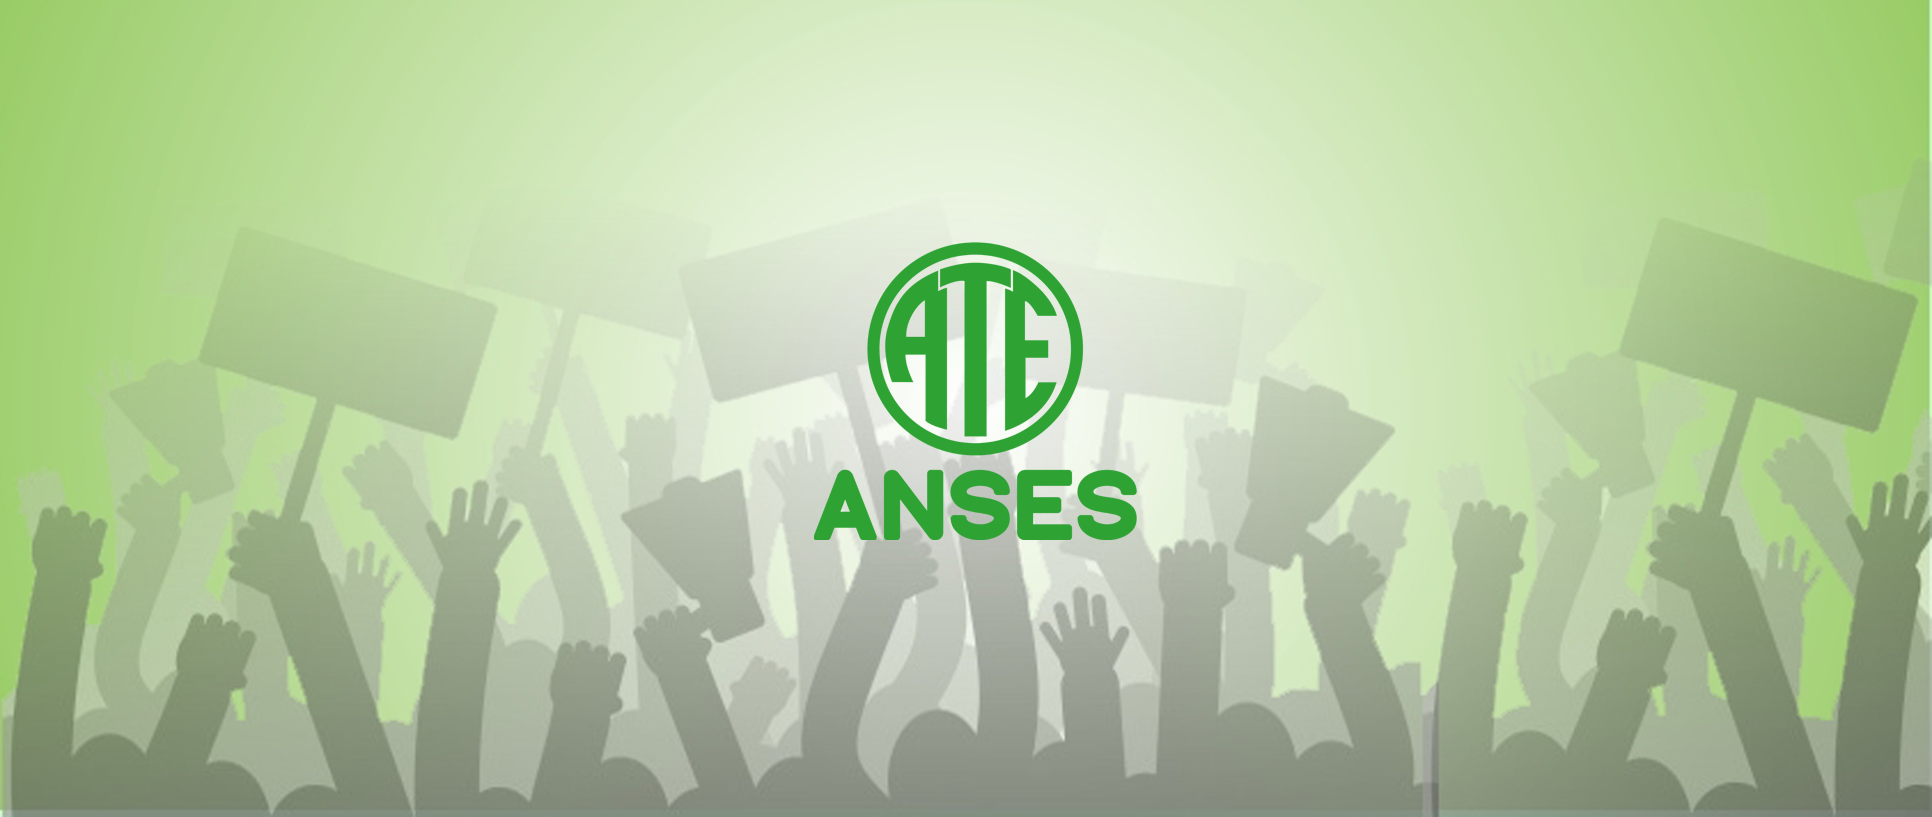 ATE ANSES